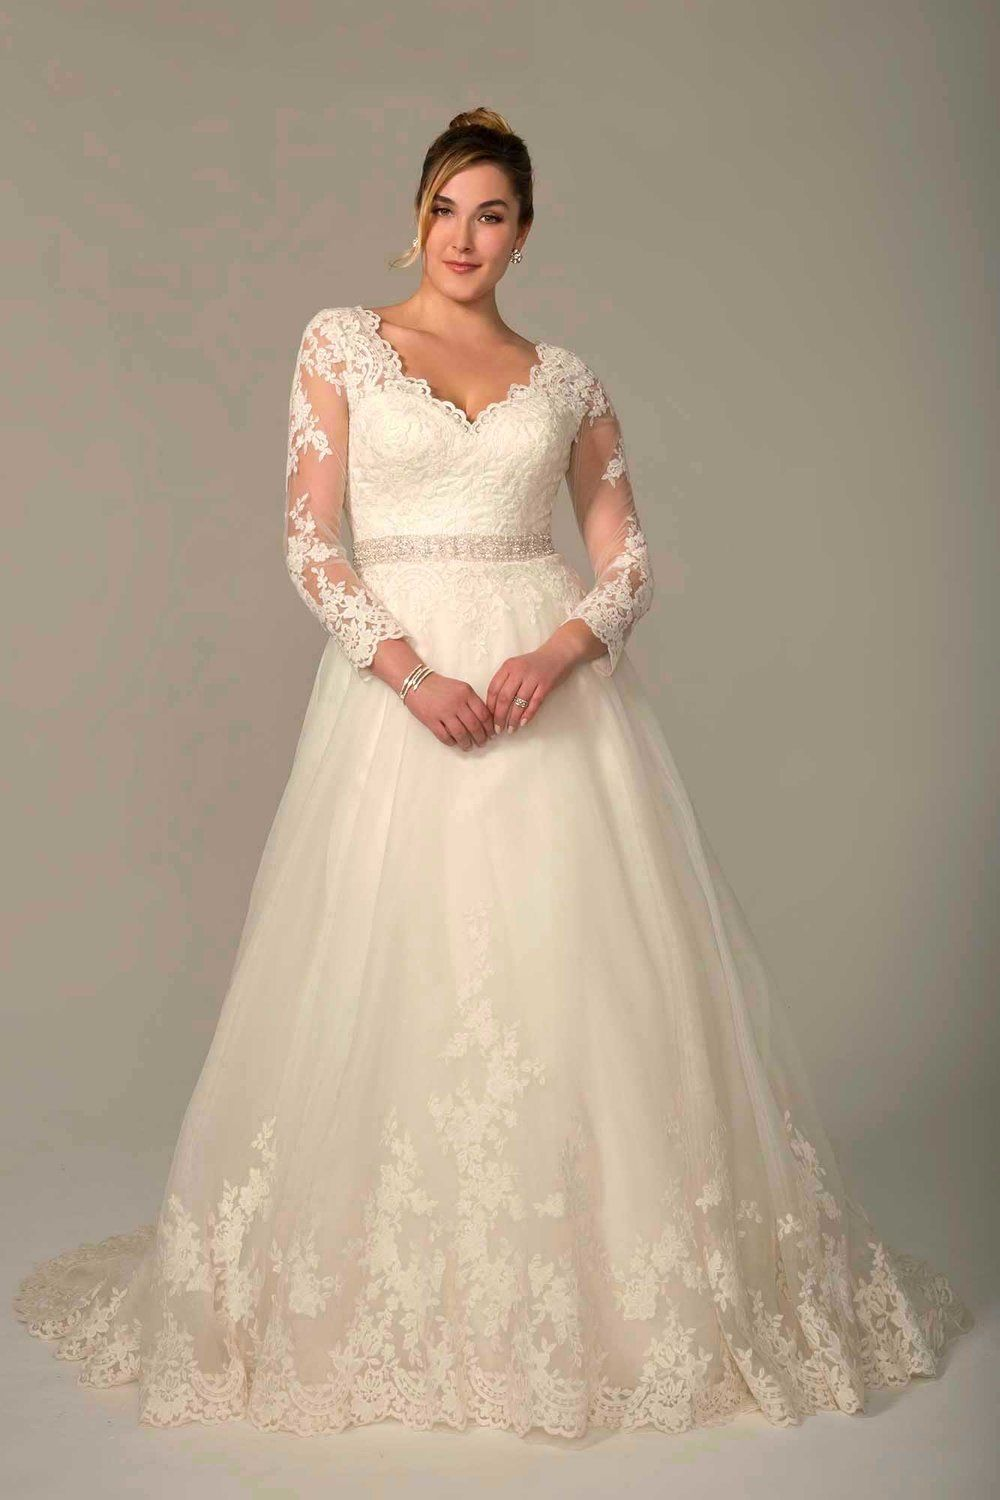 Curvy Brides Venus Gowns Nz In 2020 Wedding Dress Store Wedding Dresses Bridal Wedding Dresses